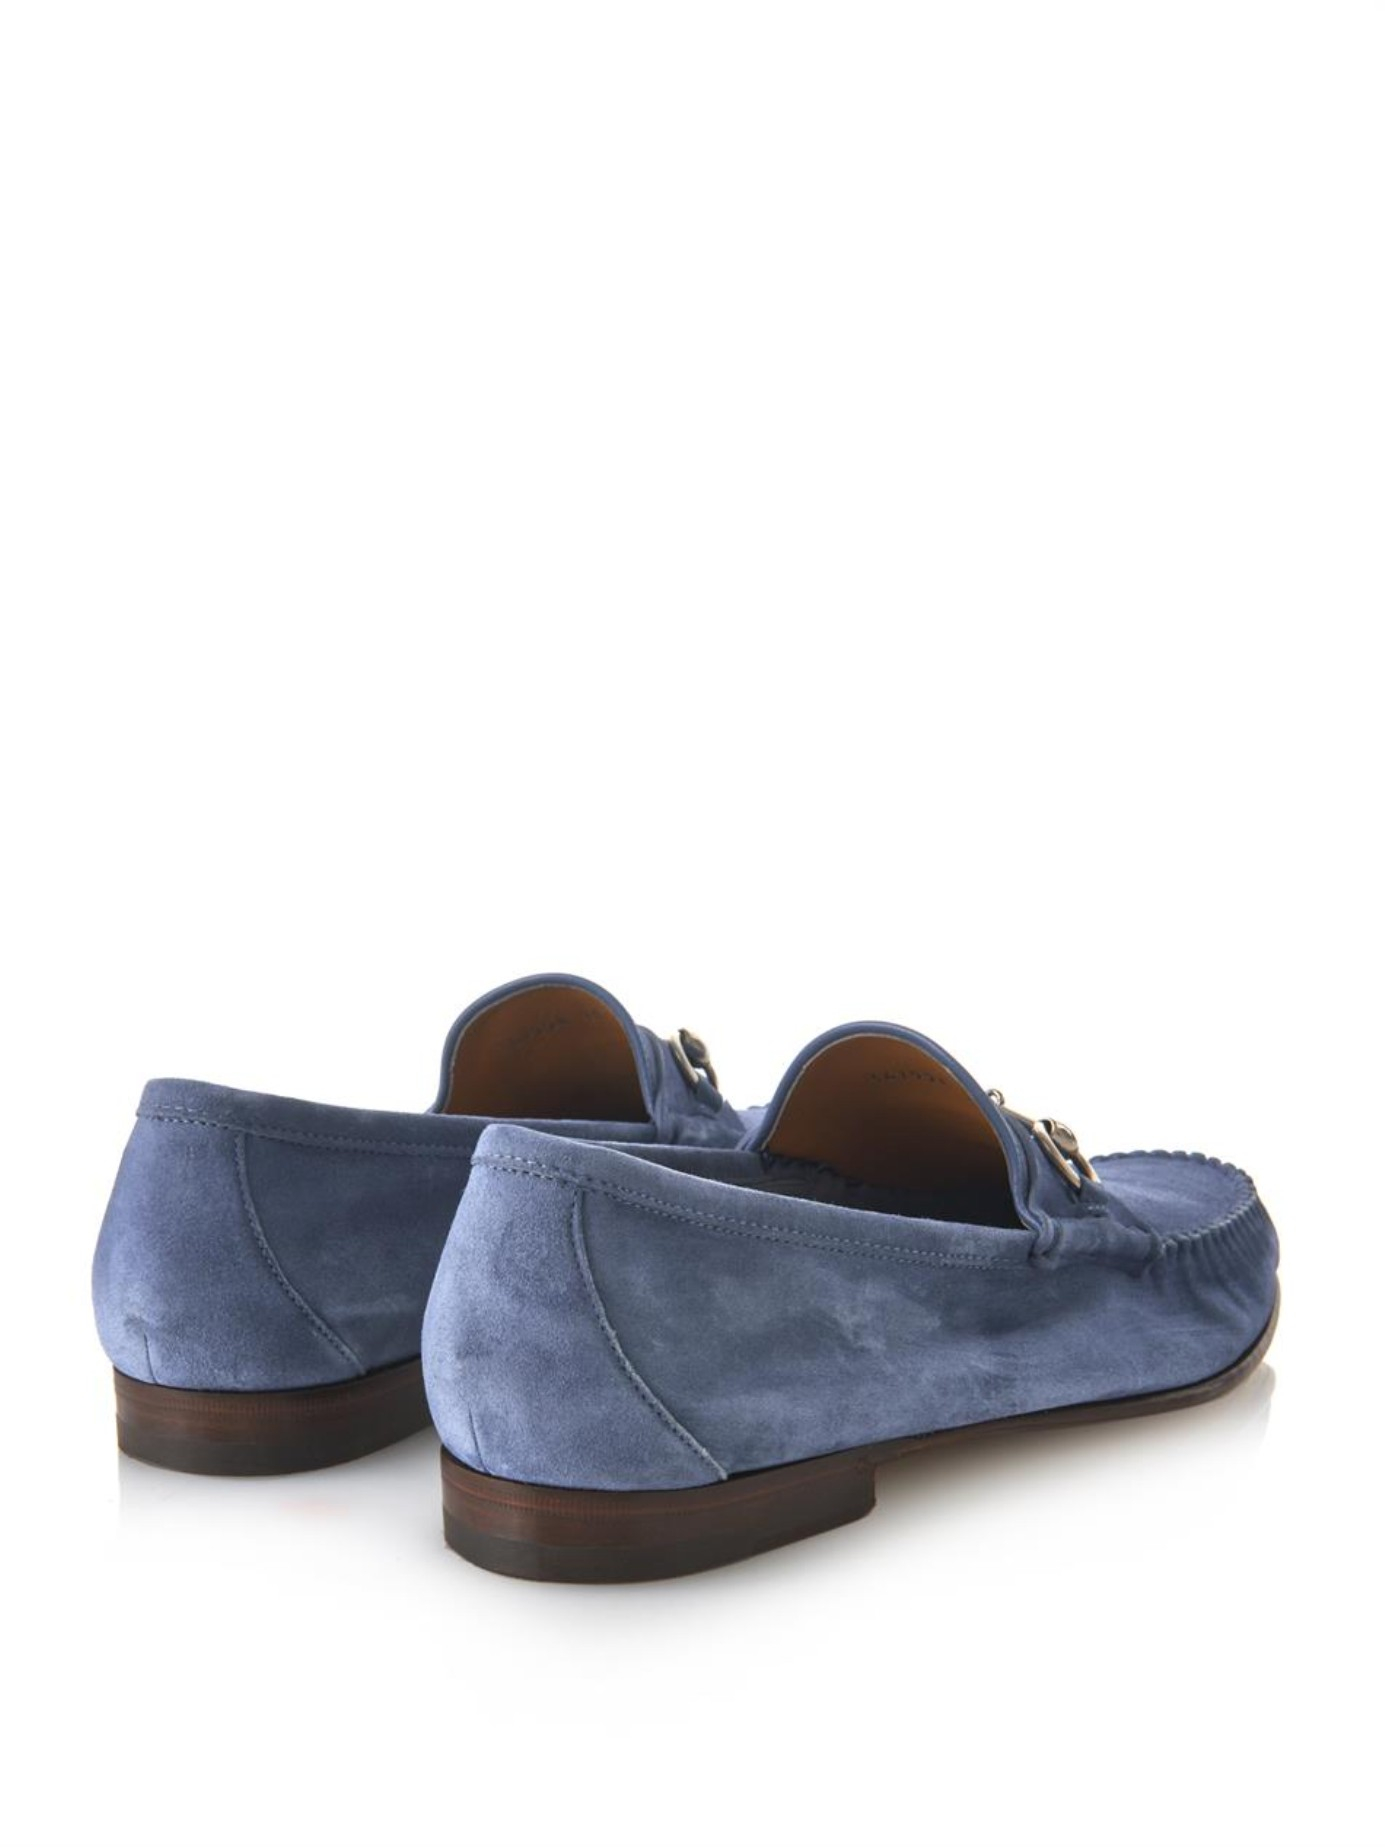 Lyst Gucci Roos Suede Loafers In Blue For Men